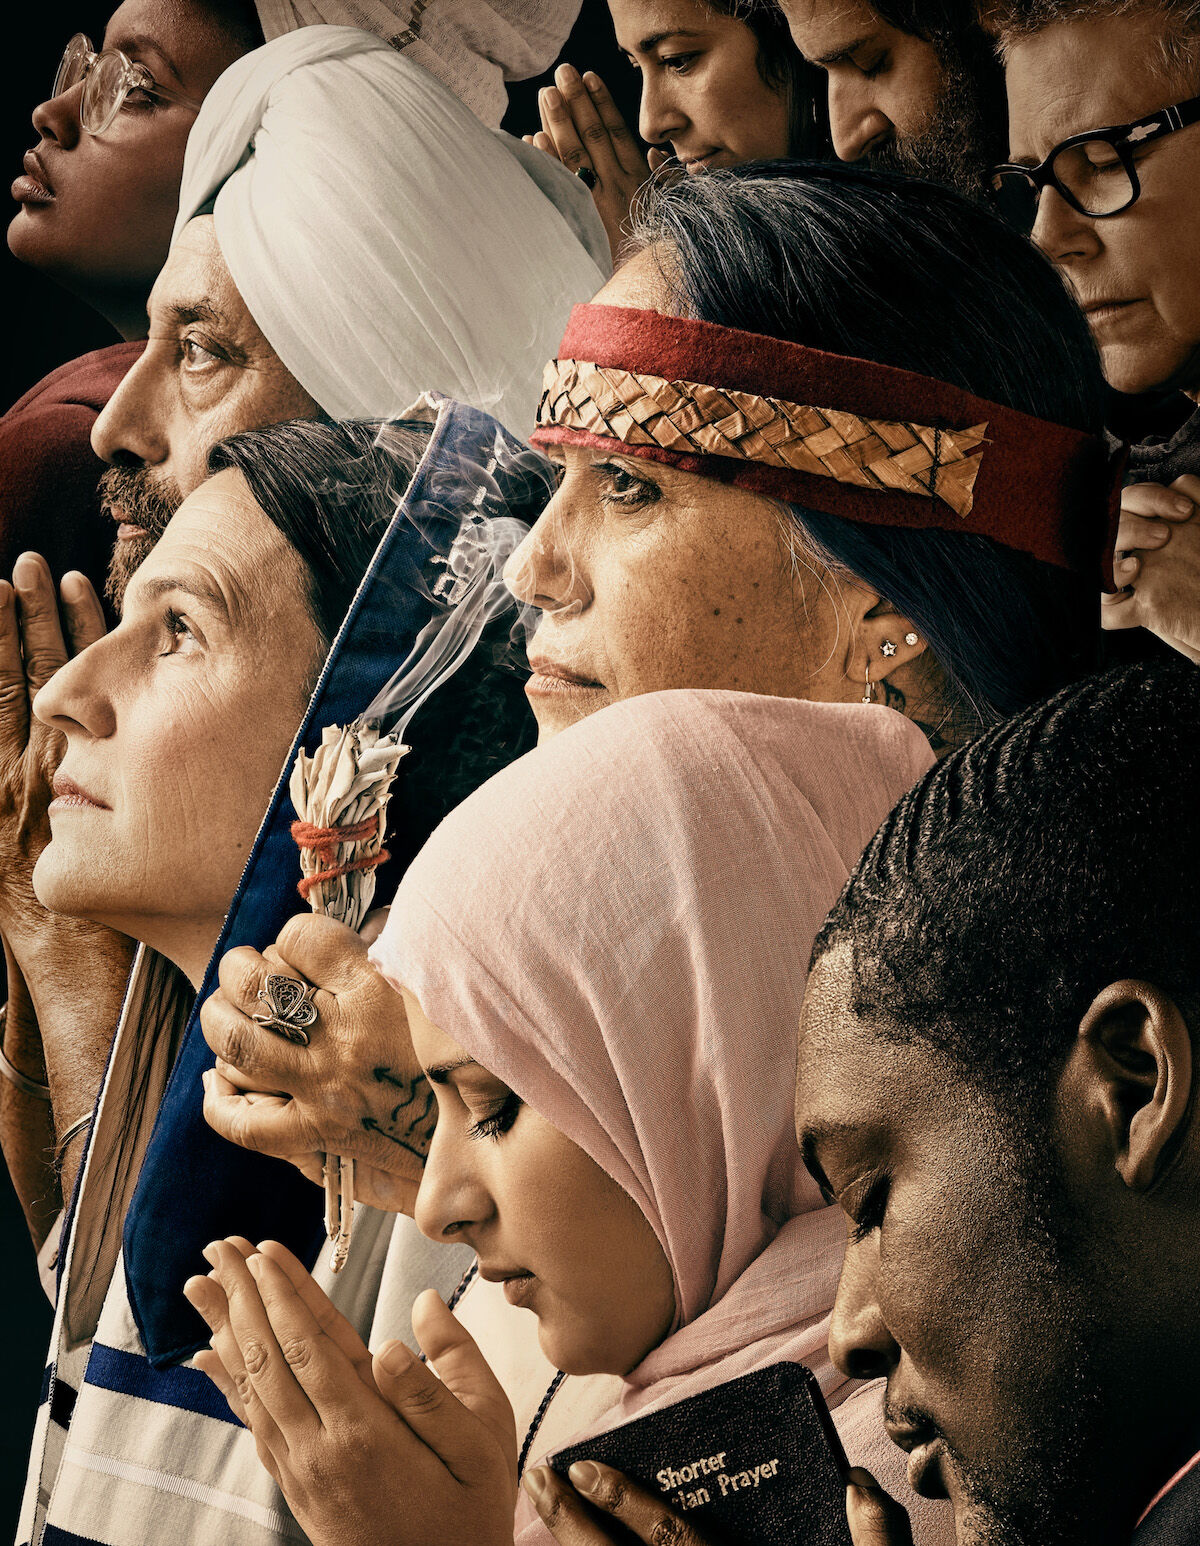 Interpretation of Norman Rockwell's Freedom of Worship by For Freedoms, featuring Rev. Edward Anderson, Maryam Nouh, Lydia Ponce, Rabbi Sharon Brous, Gurdev Kohli, Miehrit Kassa, Greta Ronningen, Amir Yakira, Claudia Pena.